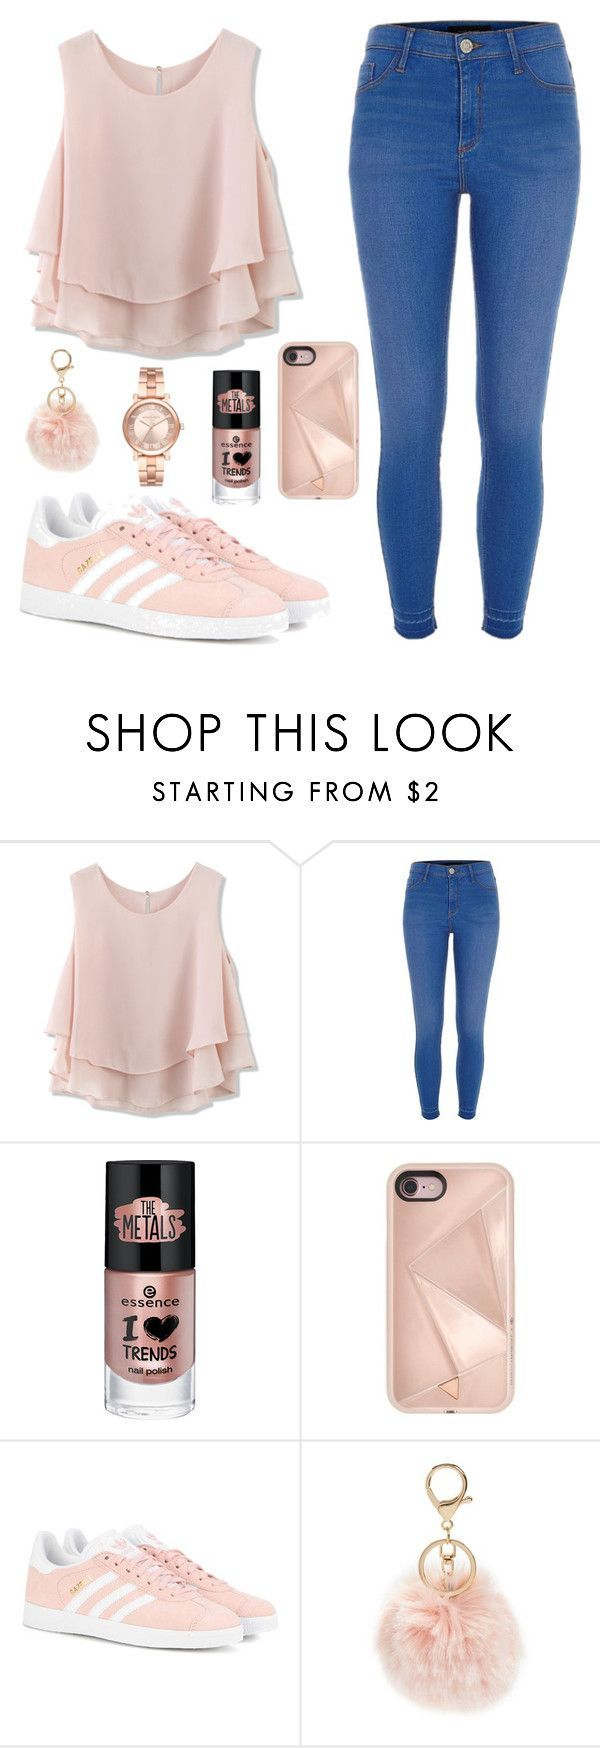 """""""Blush☺️"""" by babyyfinee30 ❤ liked on Polyvore featuring Chicwish, River Island, Rebecca Minkoff, adidas Originals, BP. and Michael Kors"""